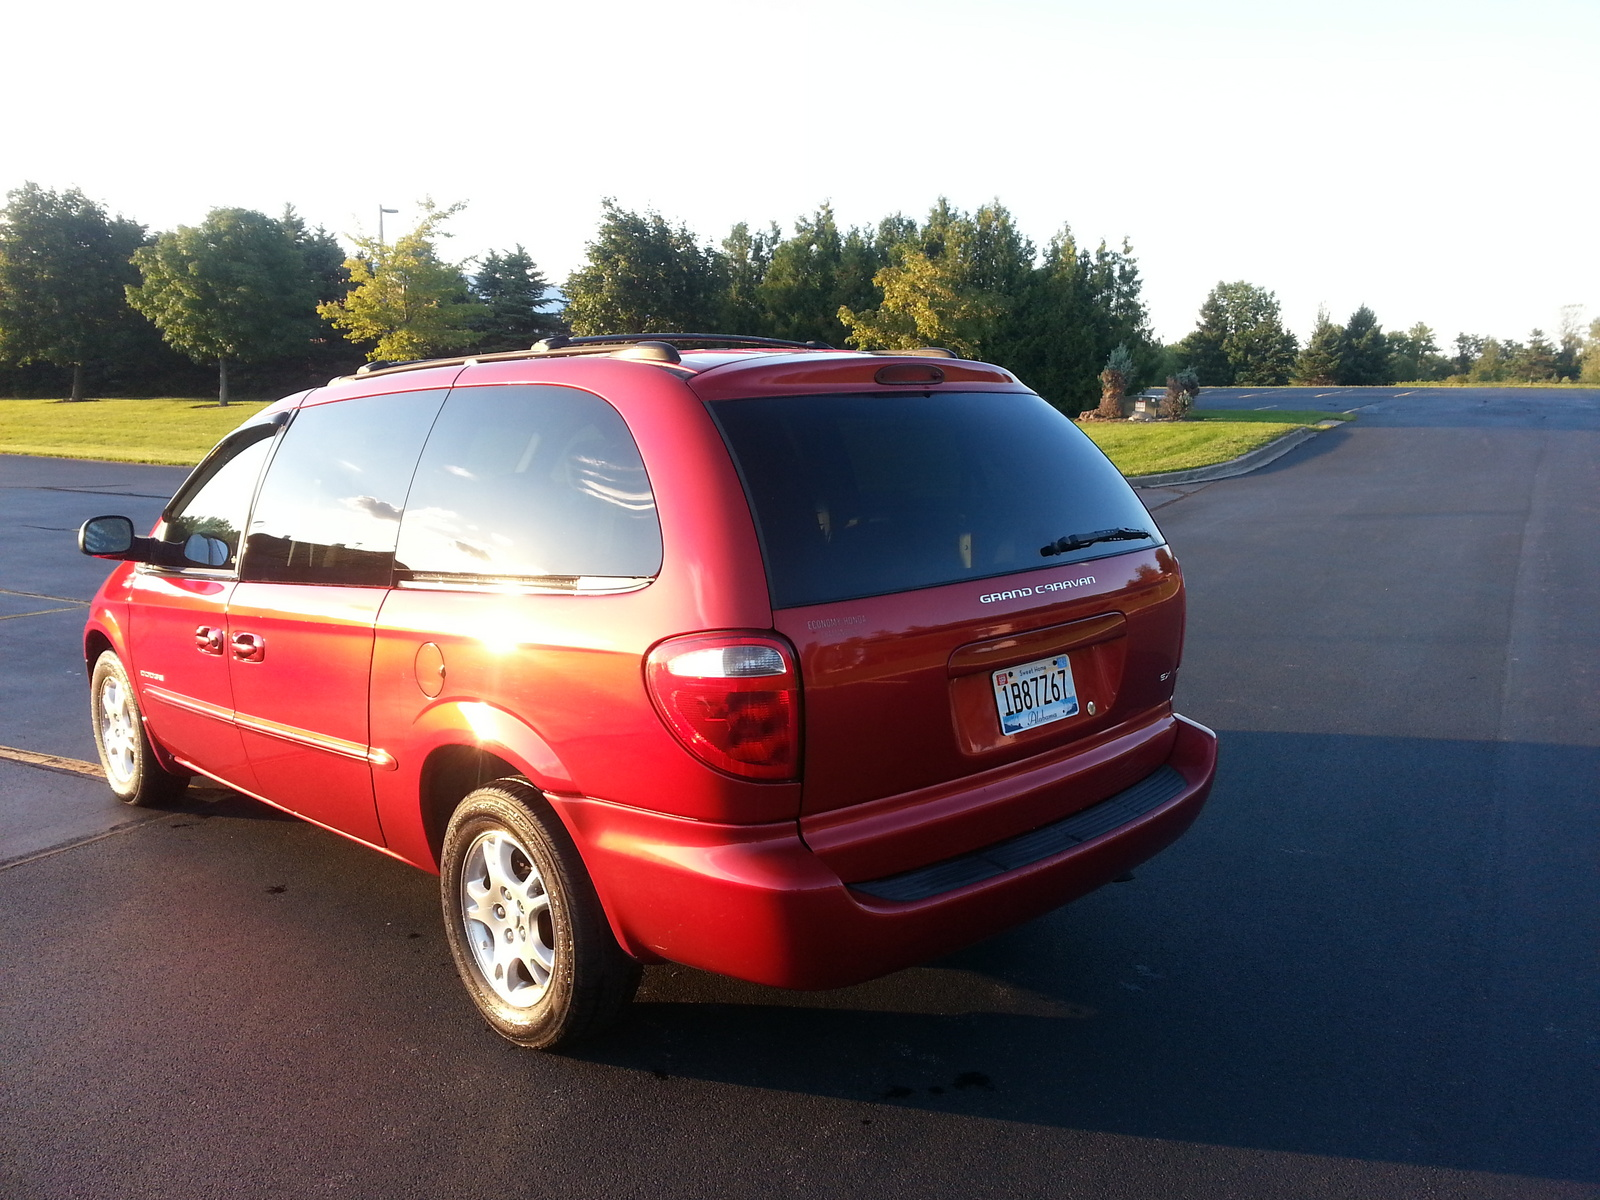 Manual Cars For Sale 2001 Dodge Grand Caravan Auto Manual border=